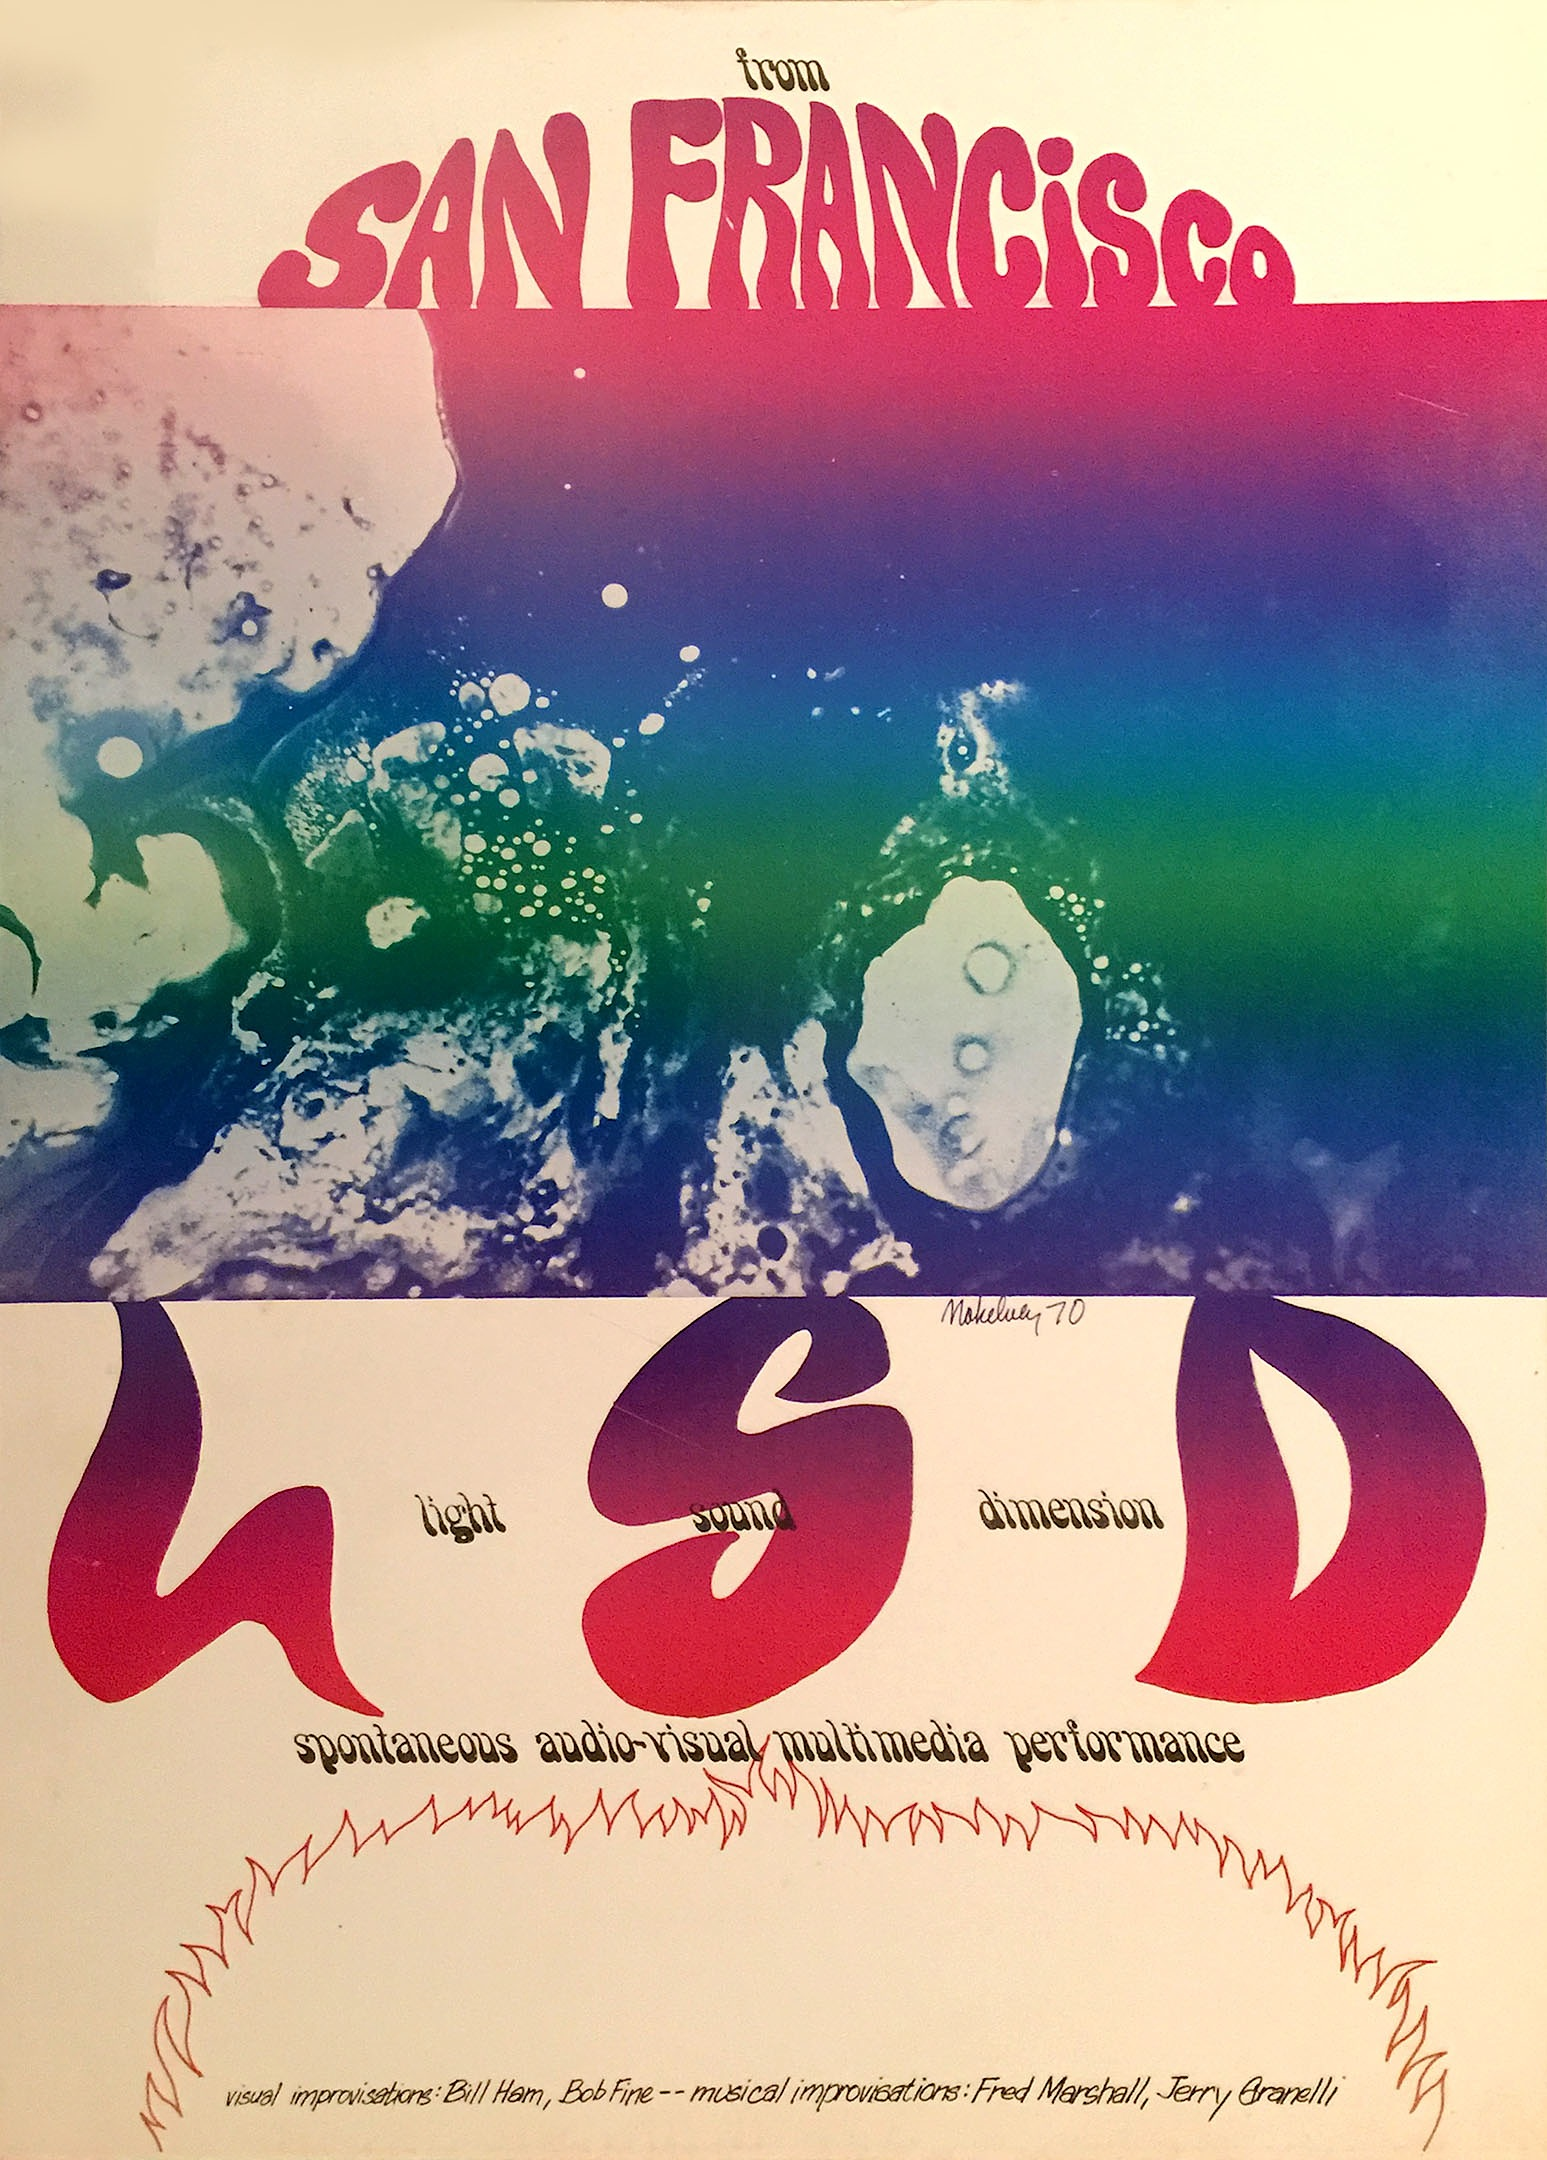 The posters that Bill Ham commissioned in 1970 for Light Sound Dimension shows in Europe were confiscated upon arrival in Geneva, Switzerland, because customs officials thought the group's initials were promoting drugs.